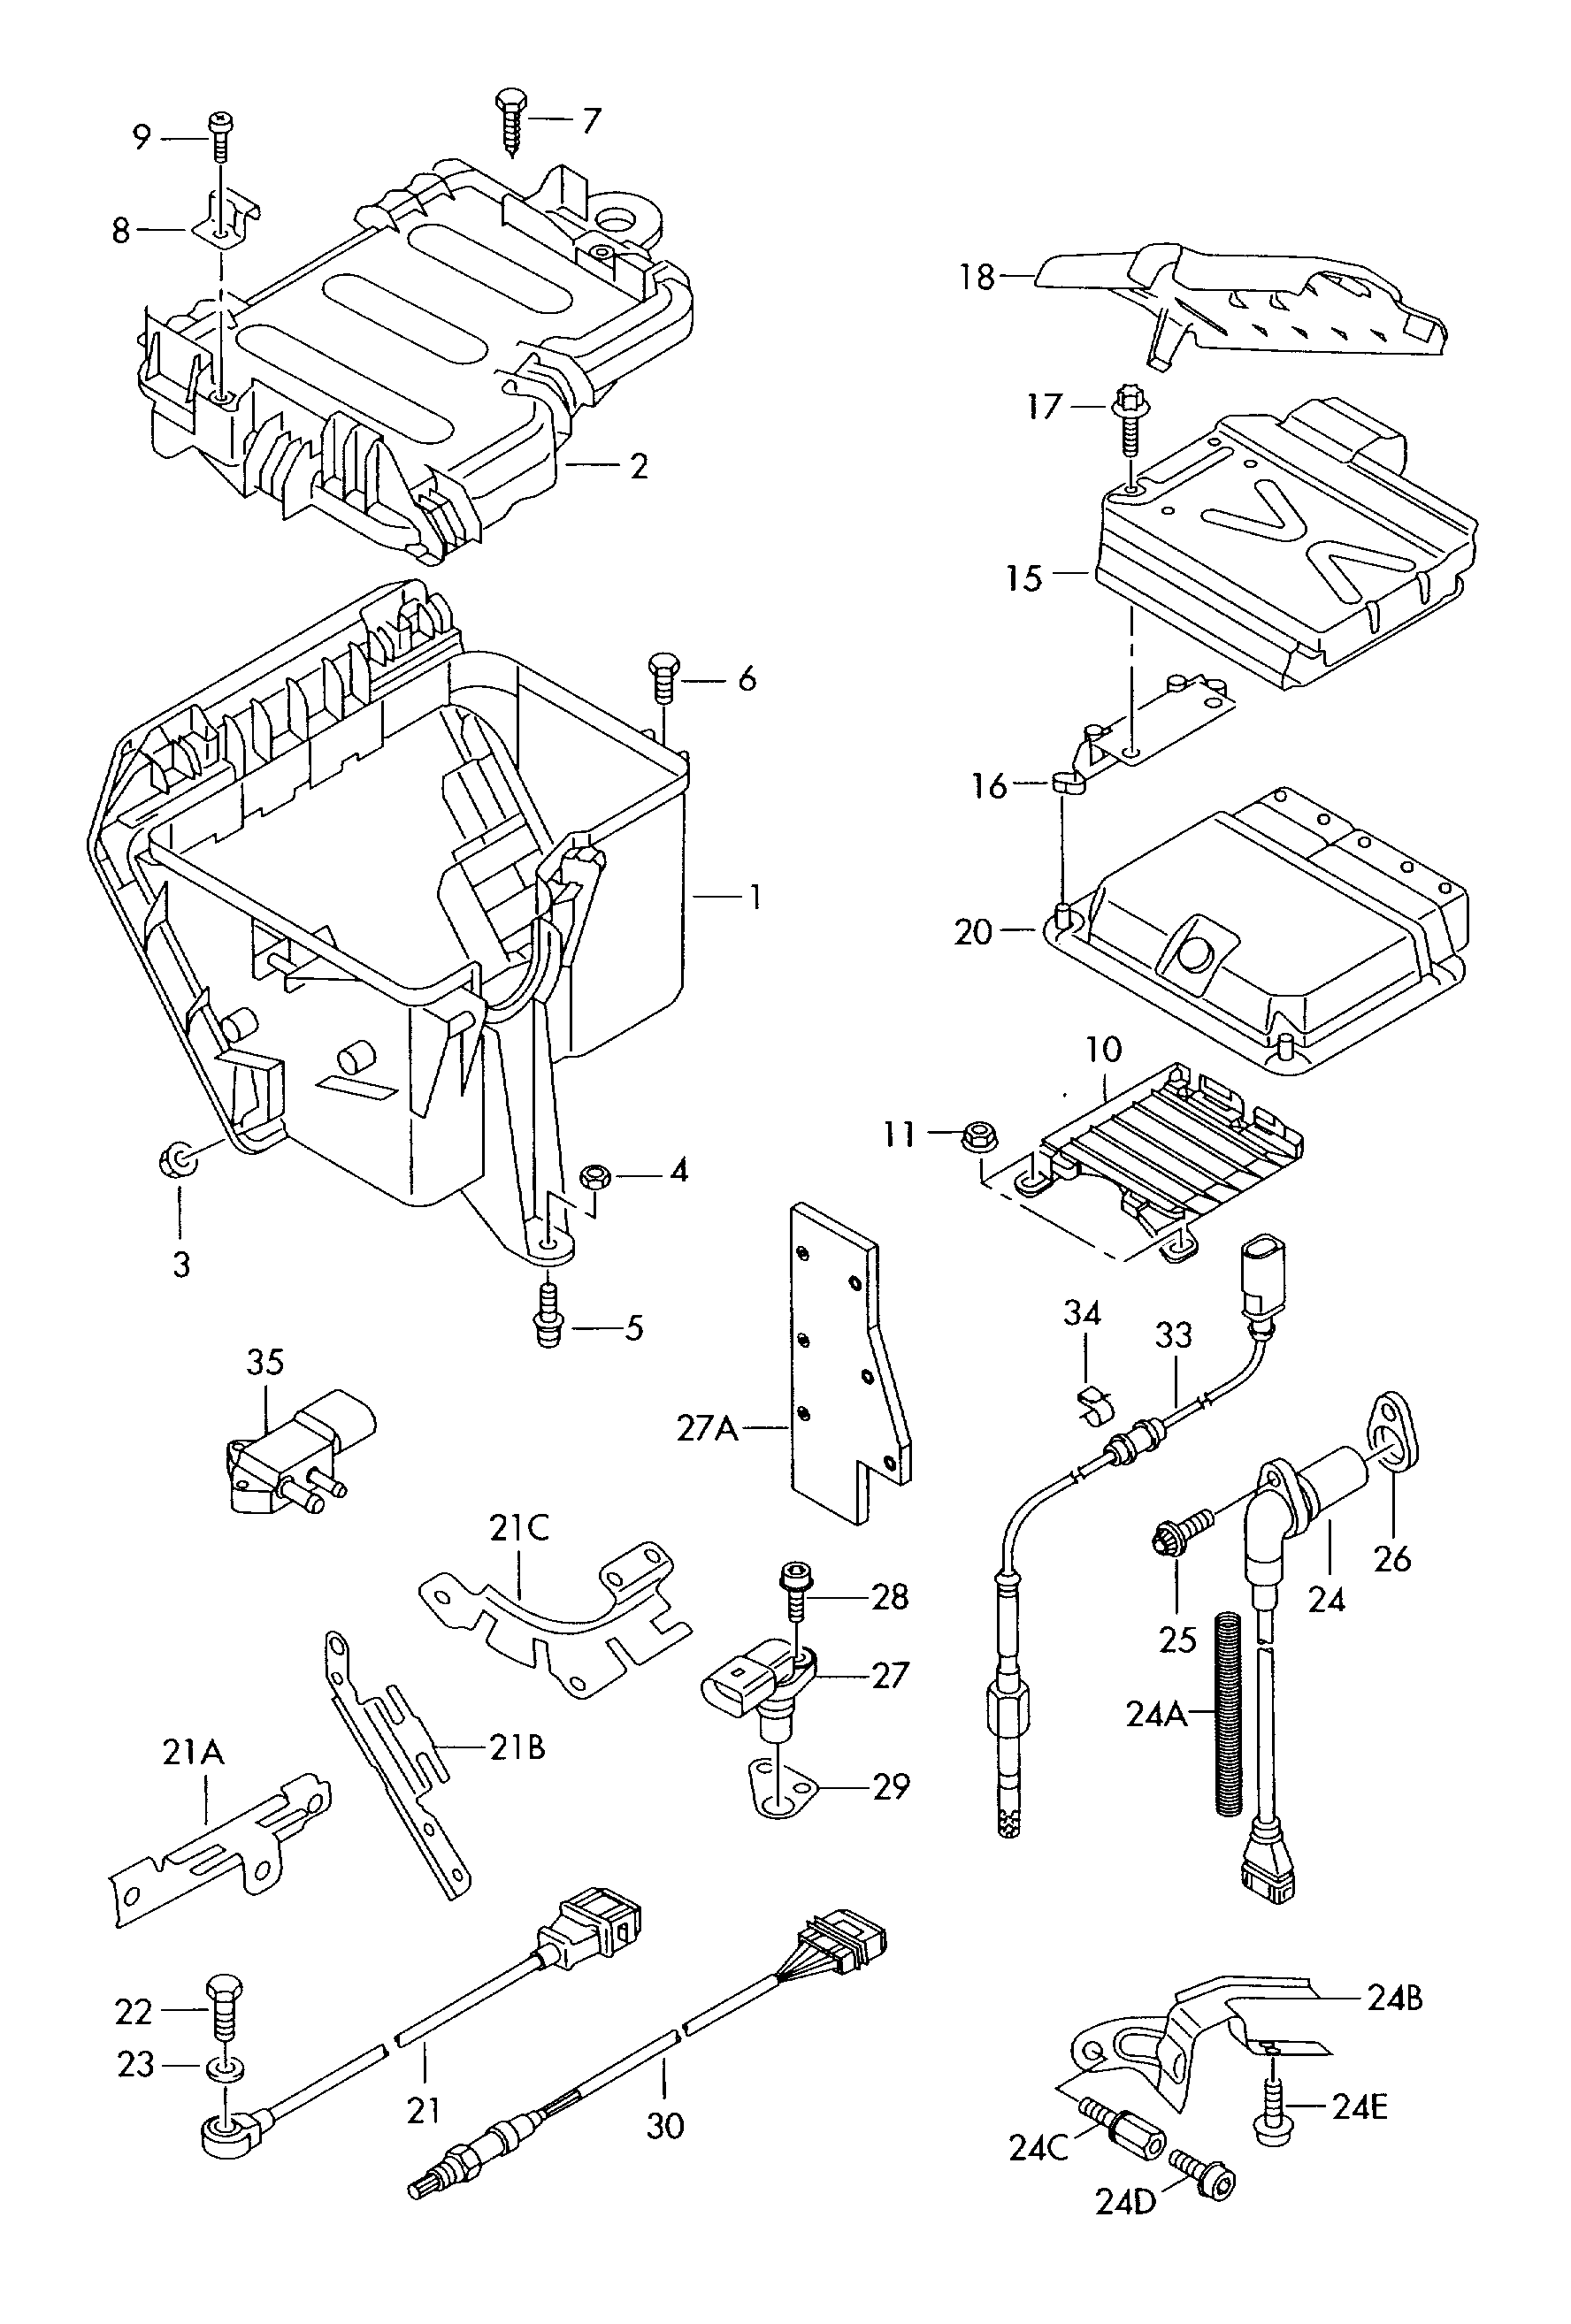 Audi A8 2008 2010 Lambda Probe Knock Sensor Inductive Engine Diagram Vag Etka